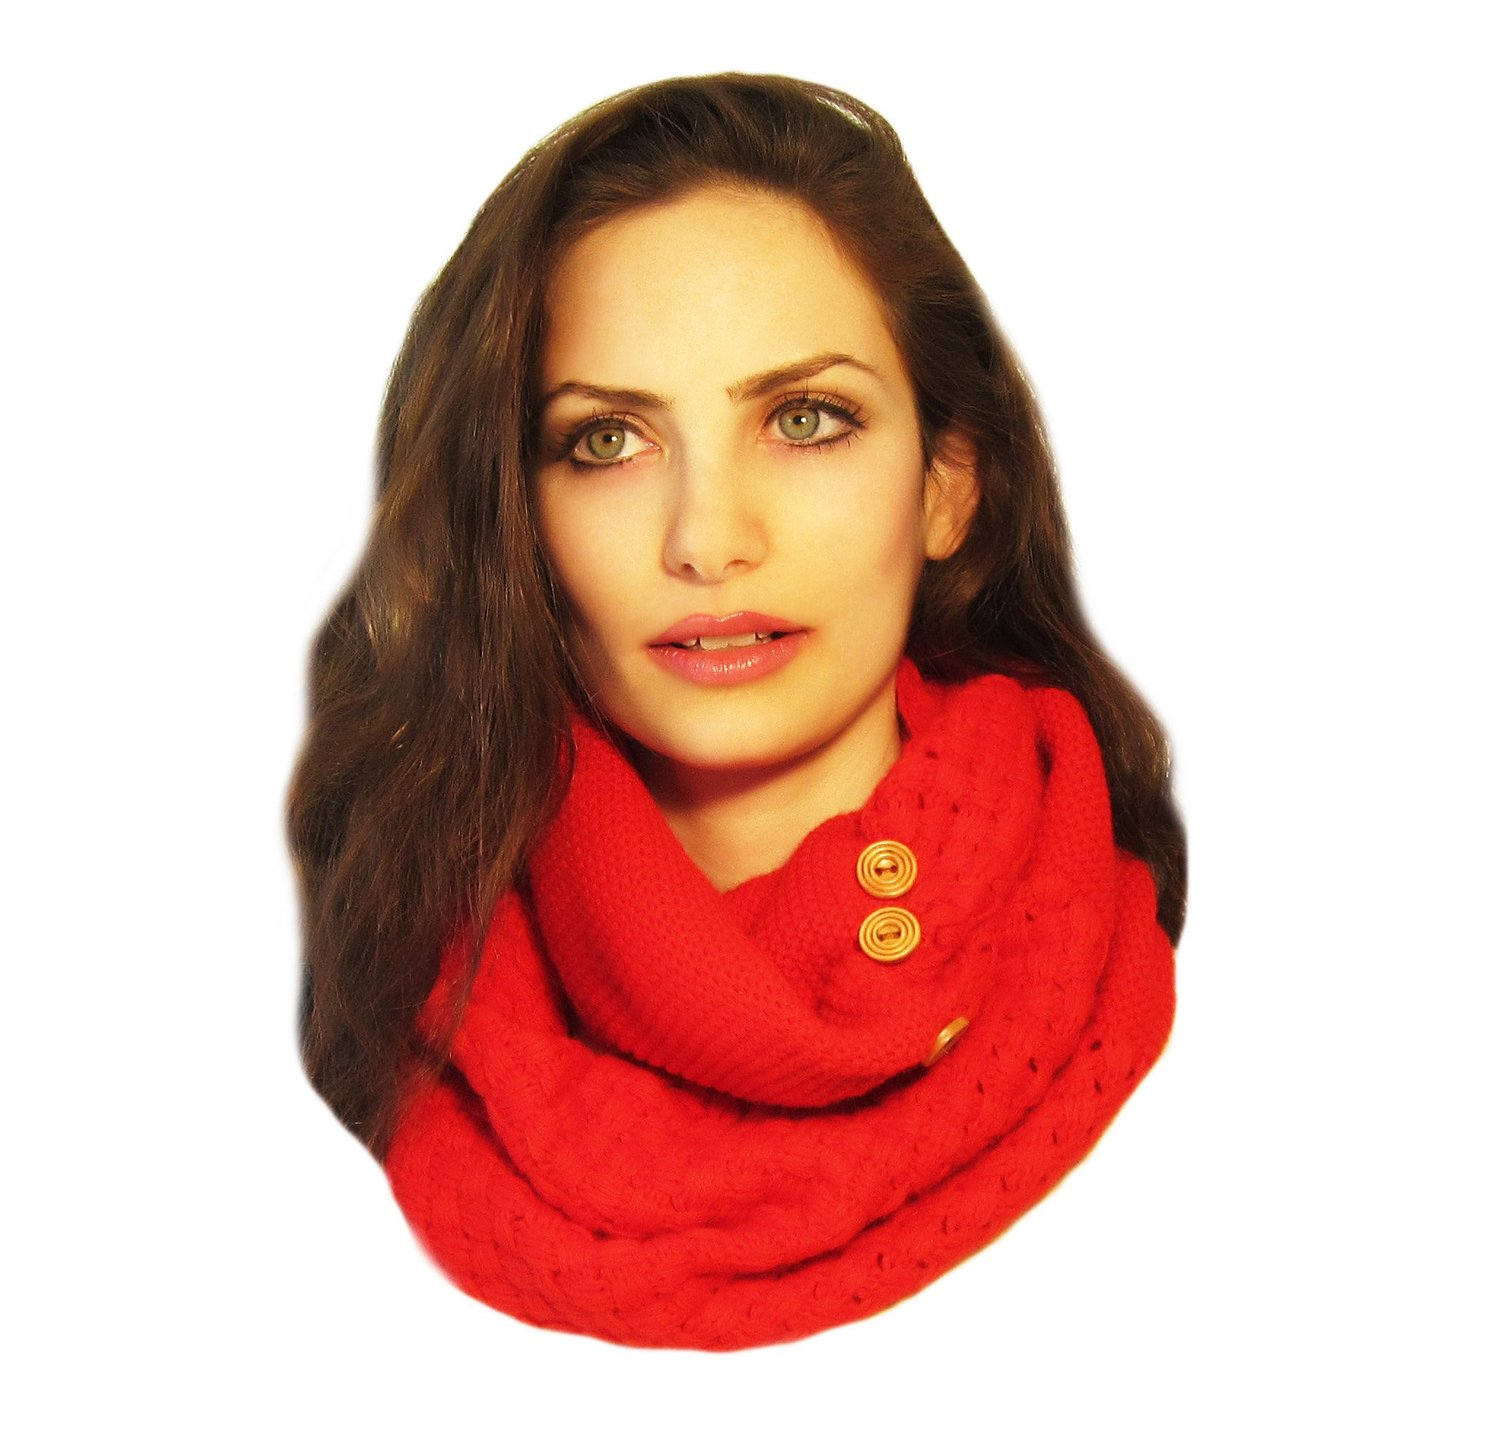 Infinity Scarf, Chunky Scarf, Knit Infinity Scarf, Loop Scarf, Circle Scarf: Red Wooden Buttons (Just buttons) at Amazon Women's Clothing store: